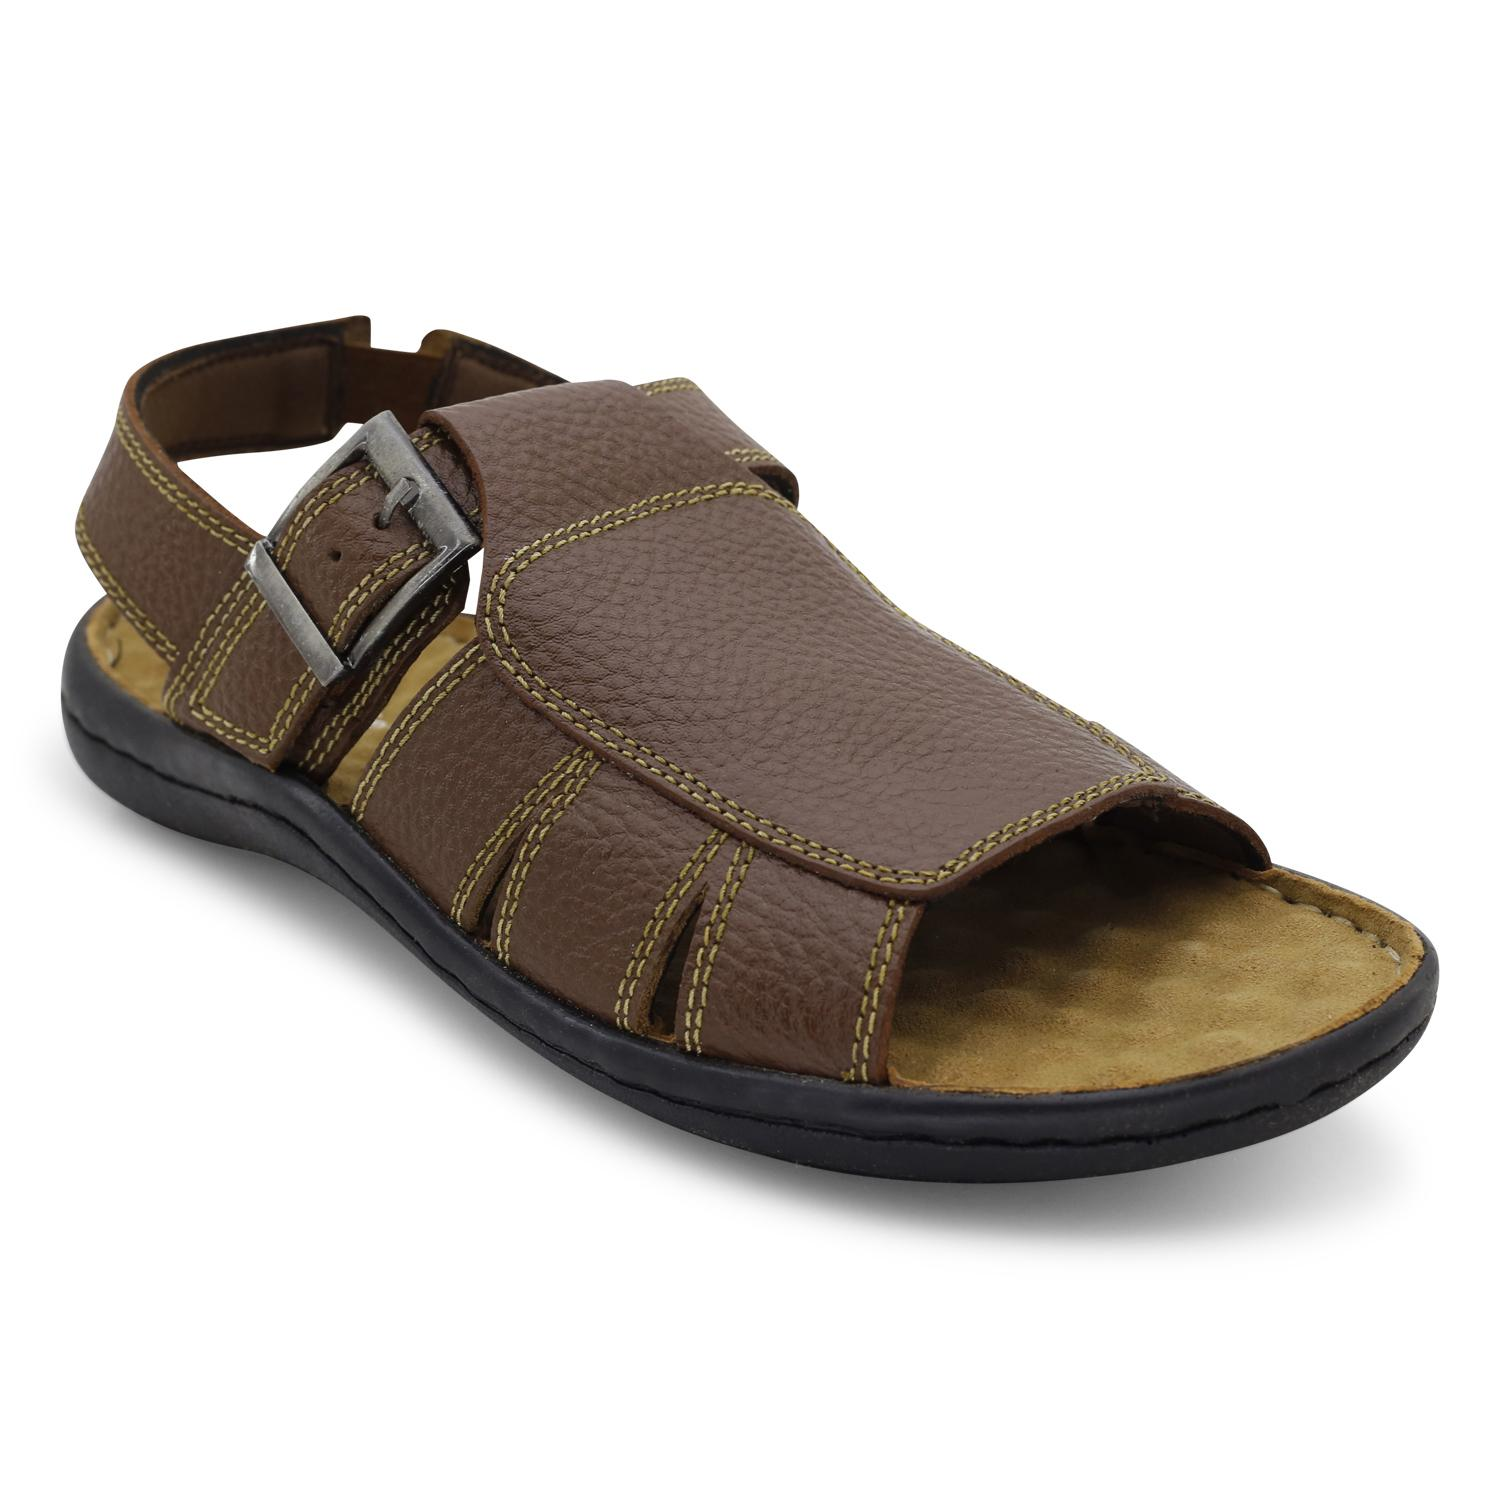 1f1c586eda51d Product details of HUSH PUPPIES Black Pure Leather Casual Sandals For Men